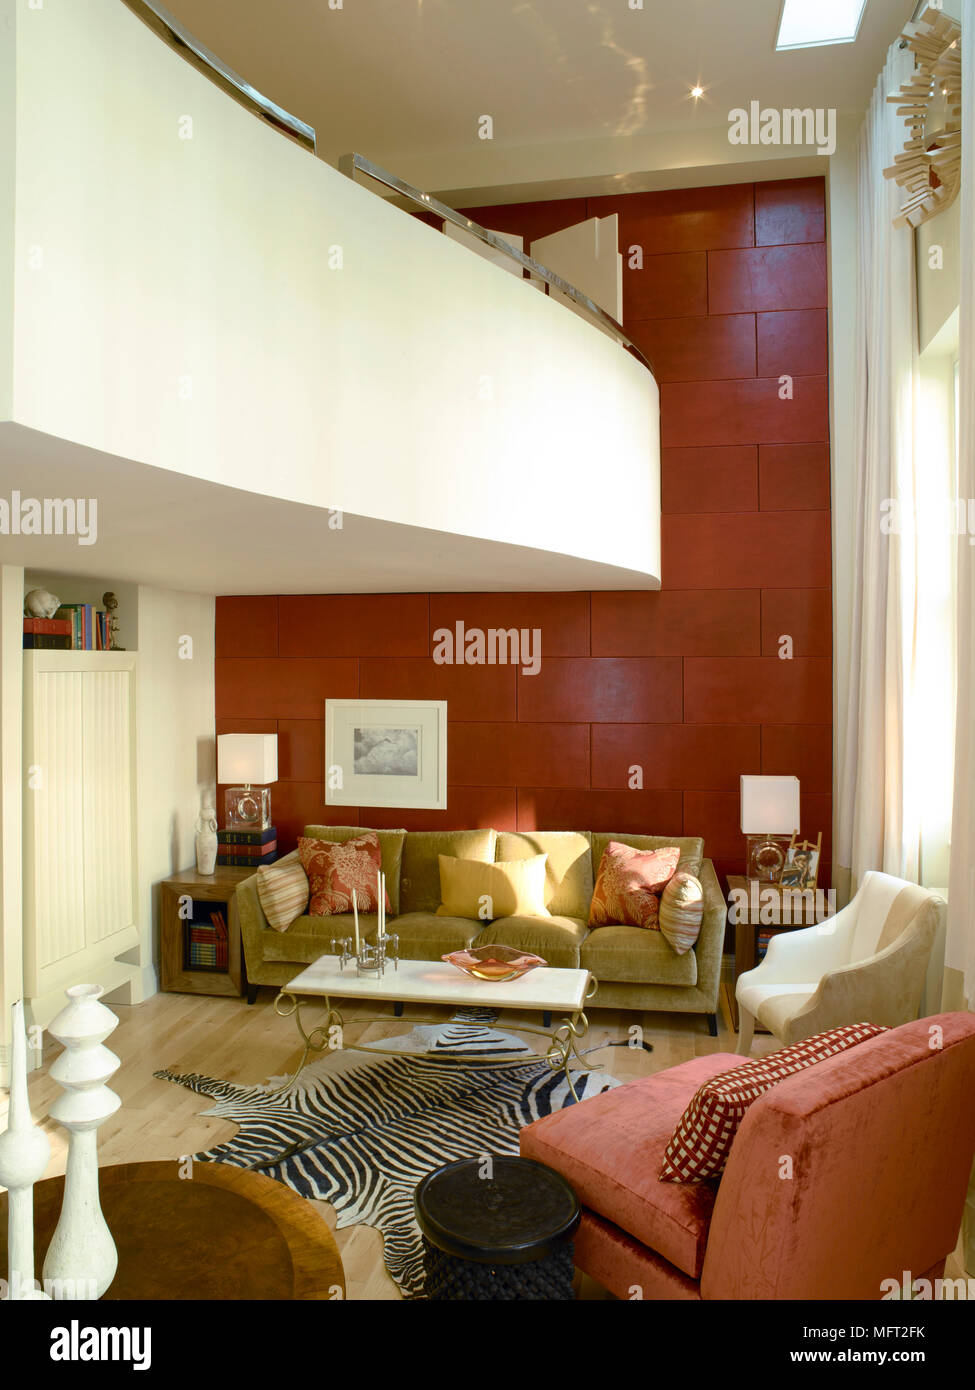 Modern Sitting Room With Red Accent Wall Curving Balcony